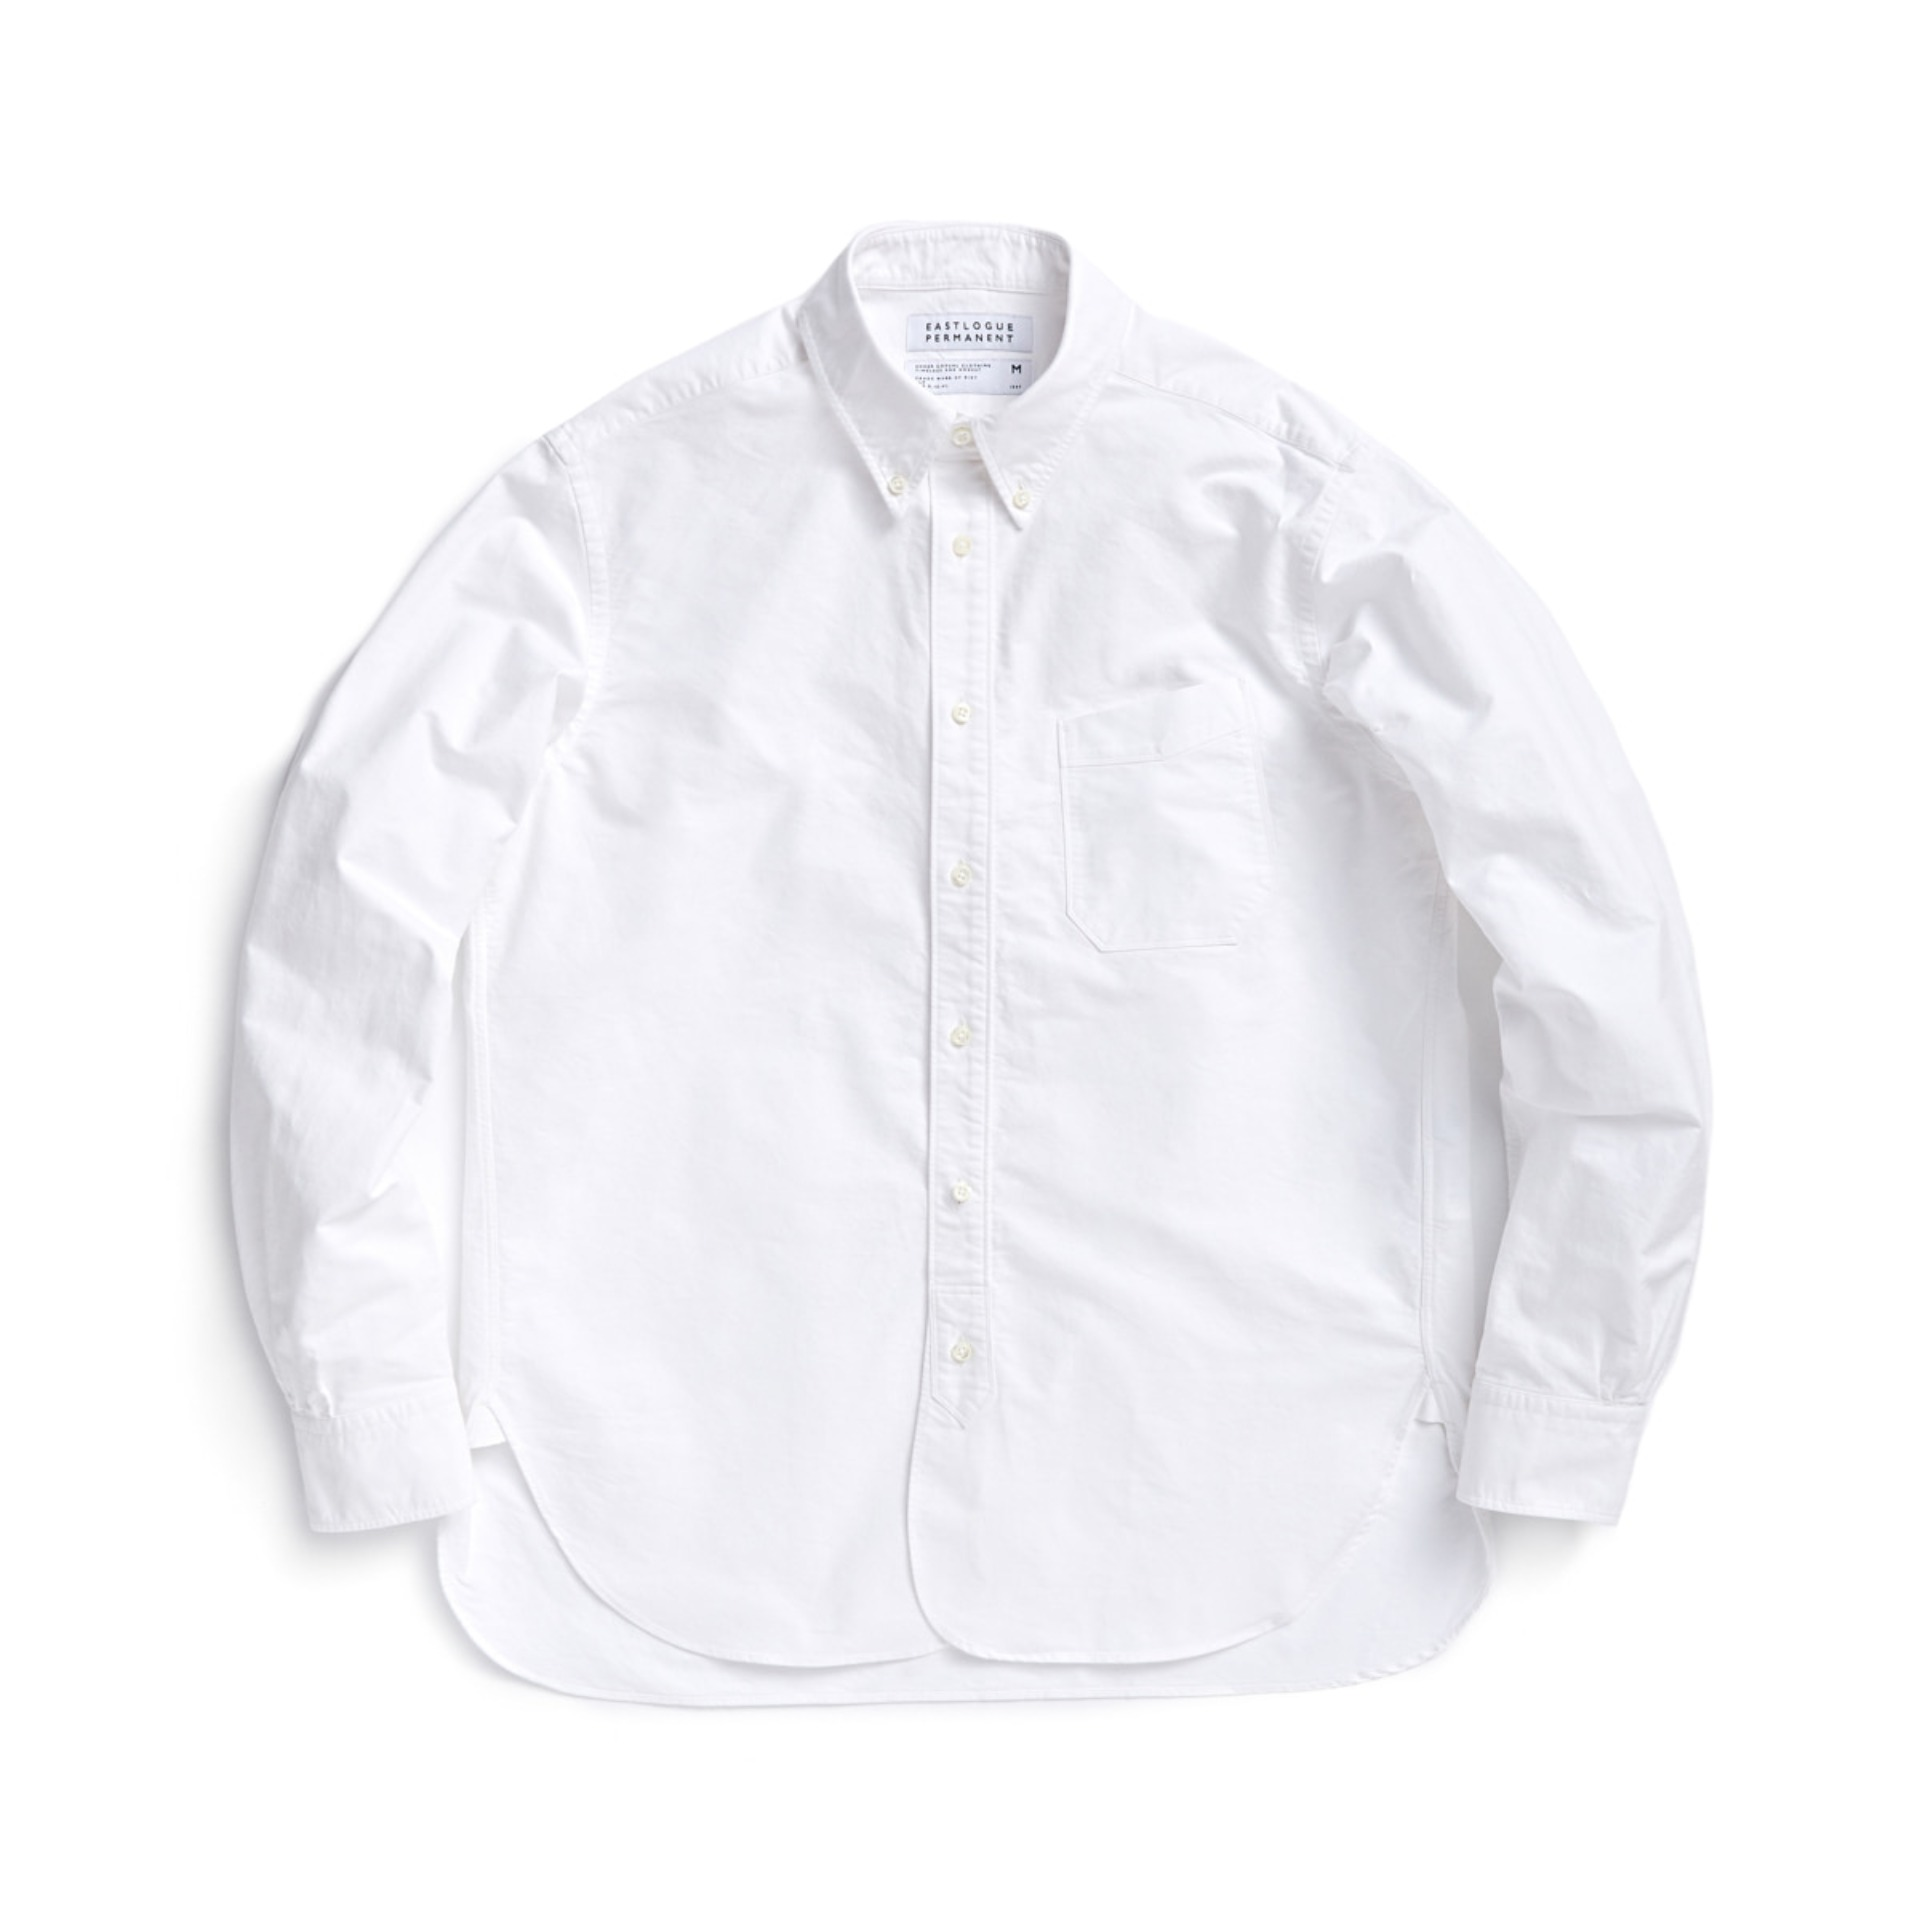 B.D REGULAR SHIRT (WHITE OXFORD)